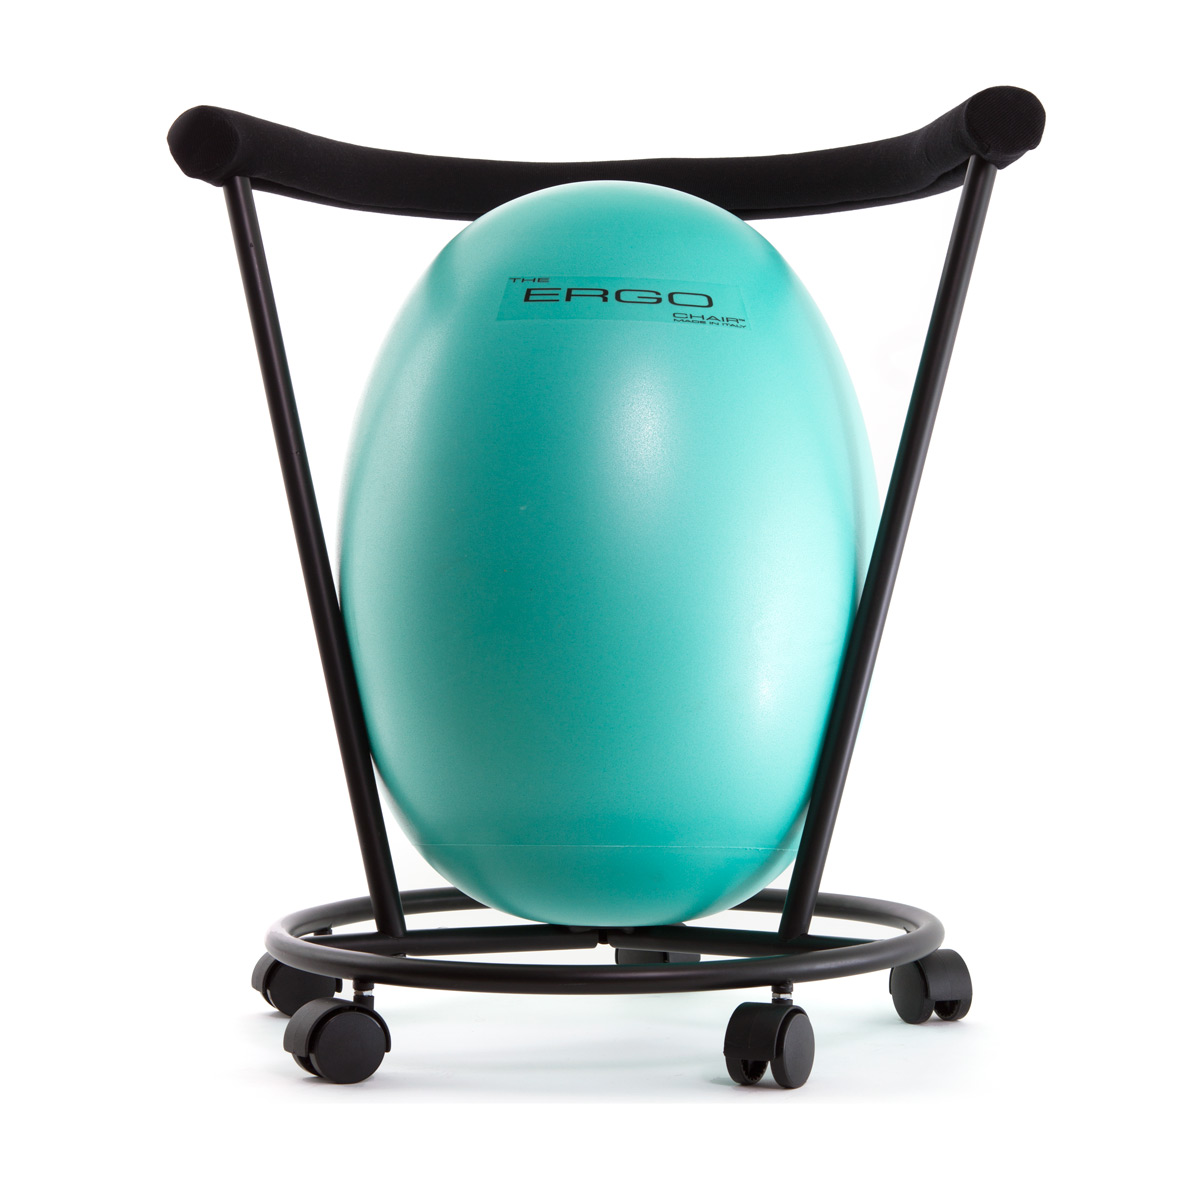 Yoga Ball Desk Chair Ergonomic Ball Chair The Ergo Chair